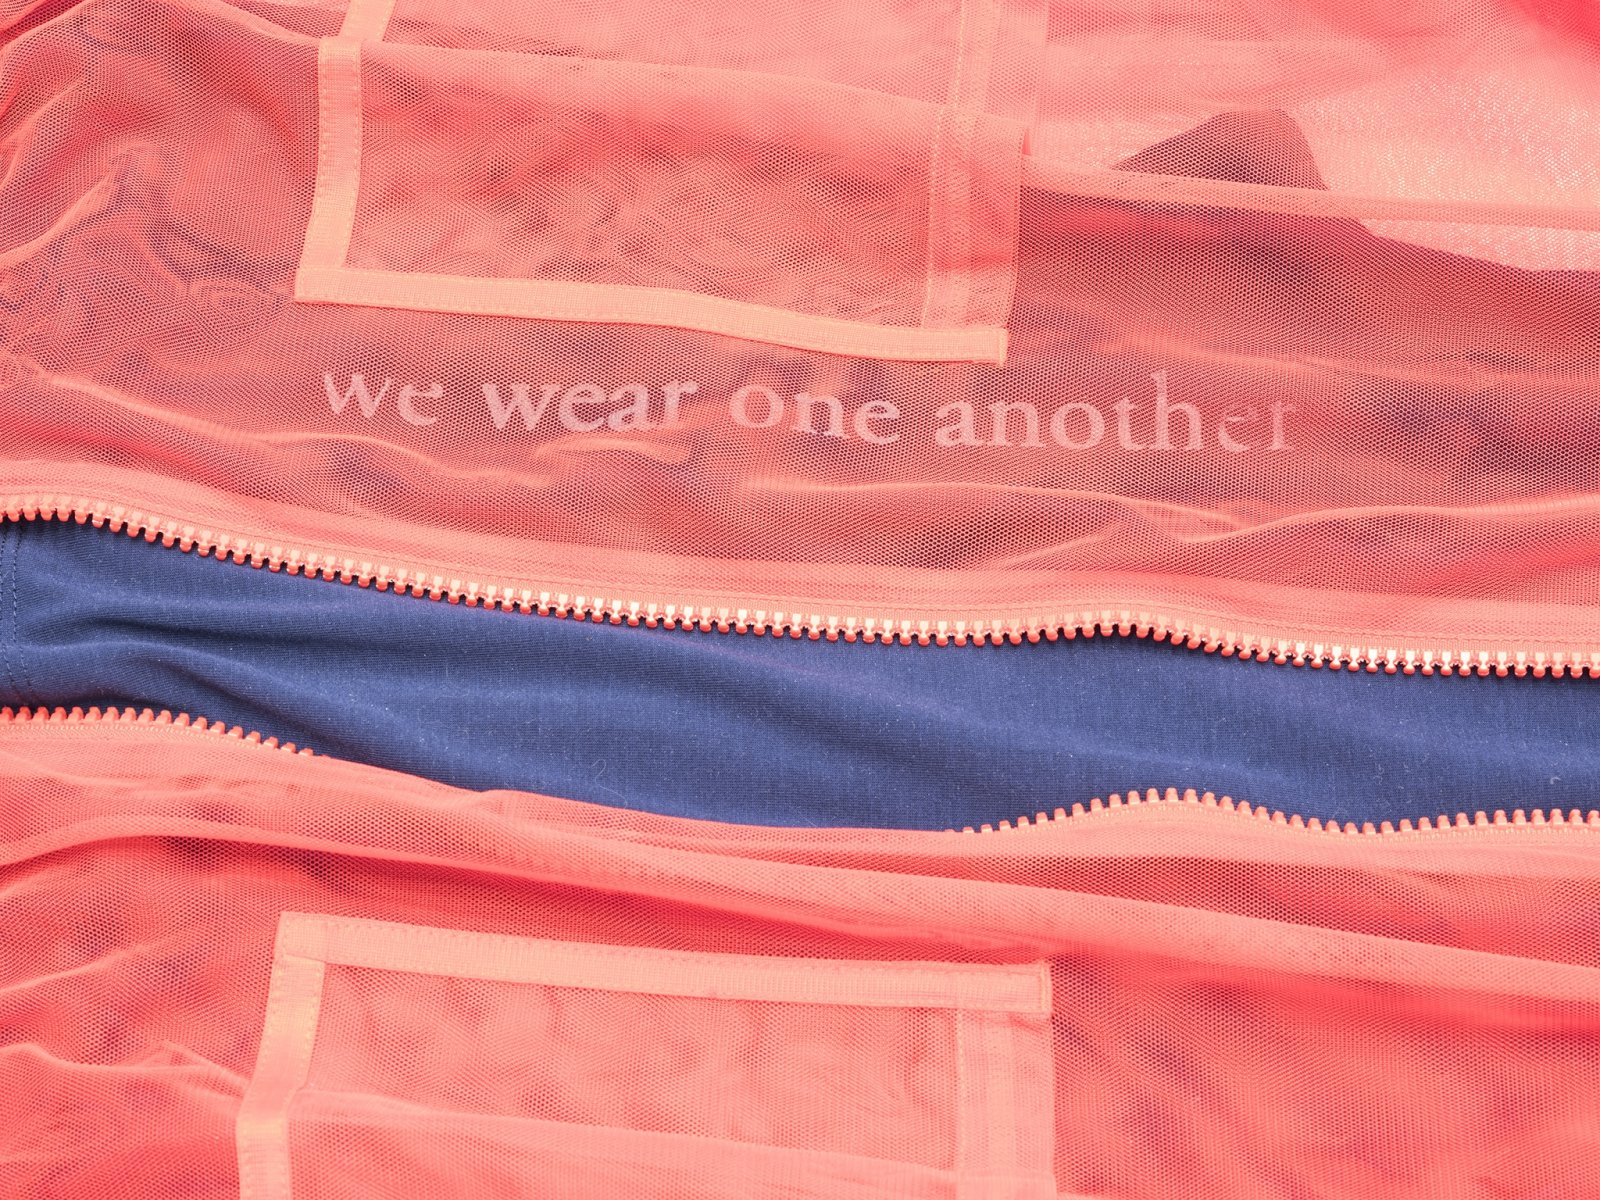 Tanya Lukin Linklater, Attire for performance, We wear one another (detail), 2019, clothing, silkscreen, 18 x 71 x 41 in. (46 x 180 x 104 cm)